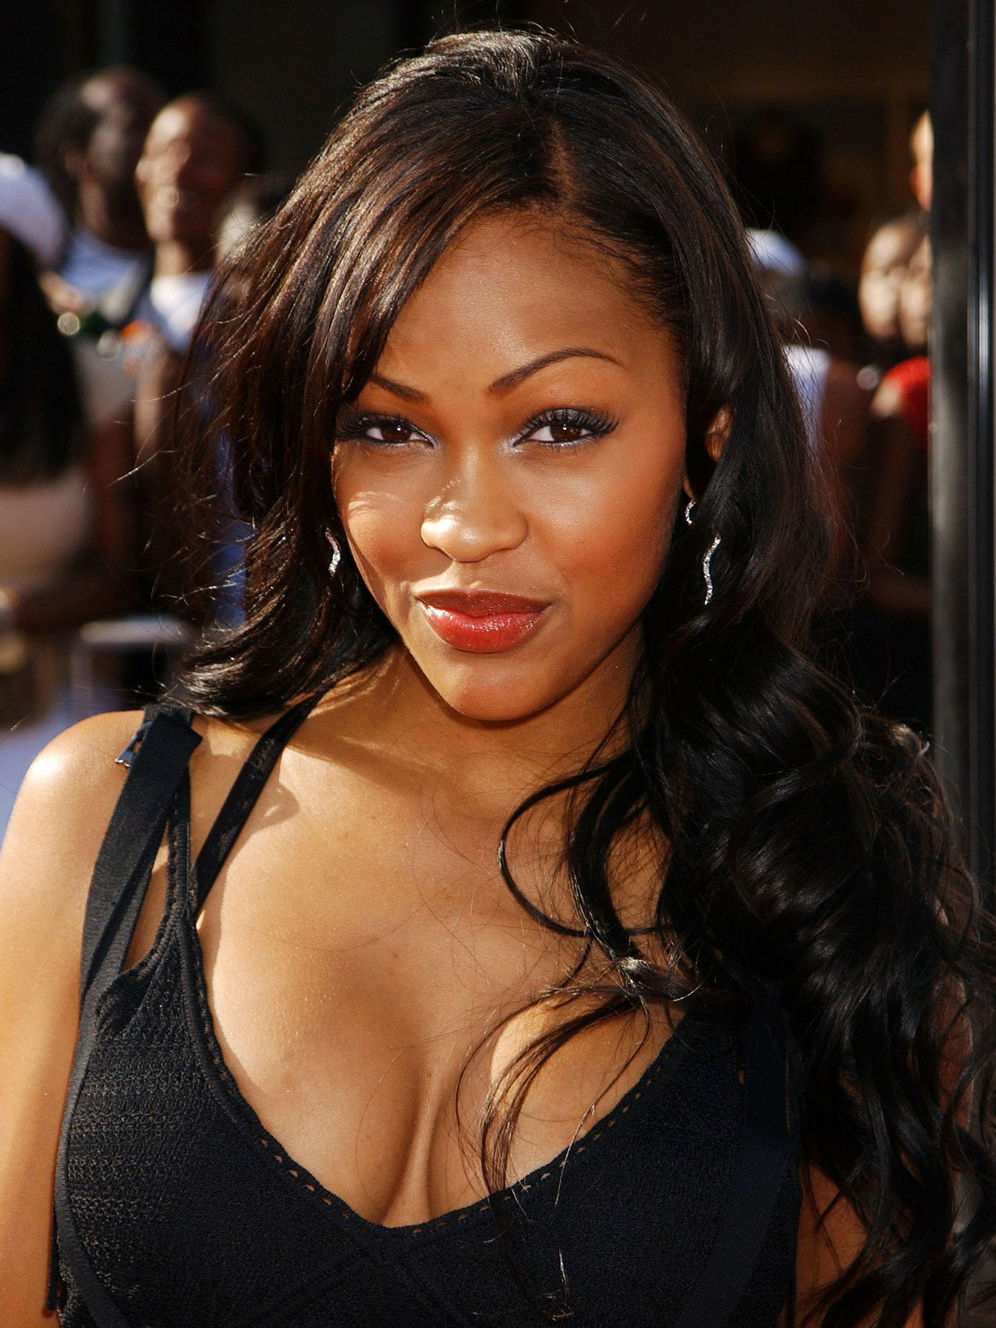 Meagan Good Husband Tattoos Smoking Body